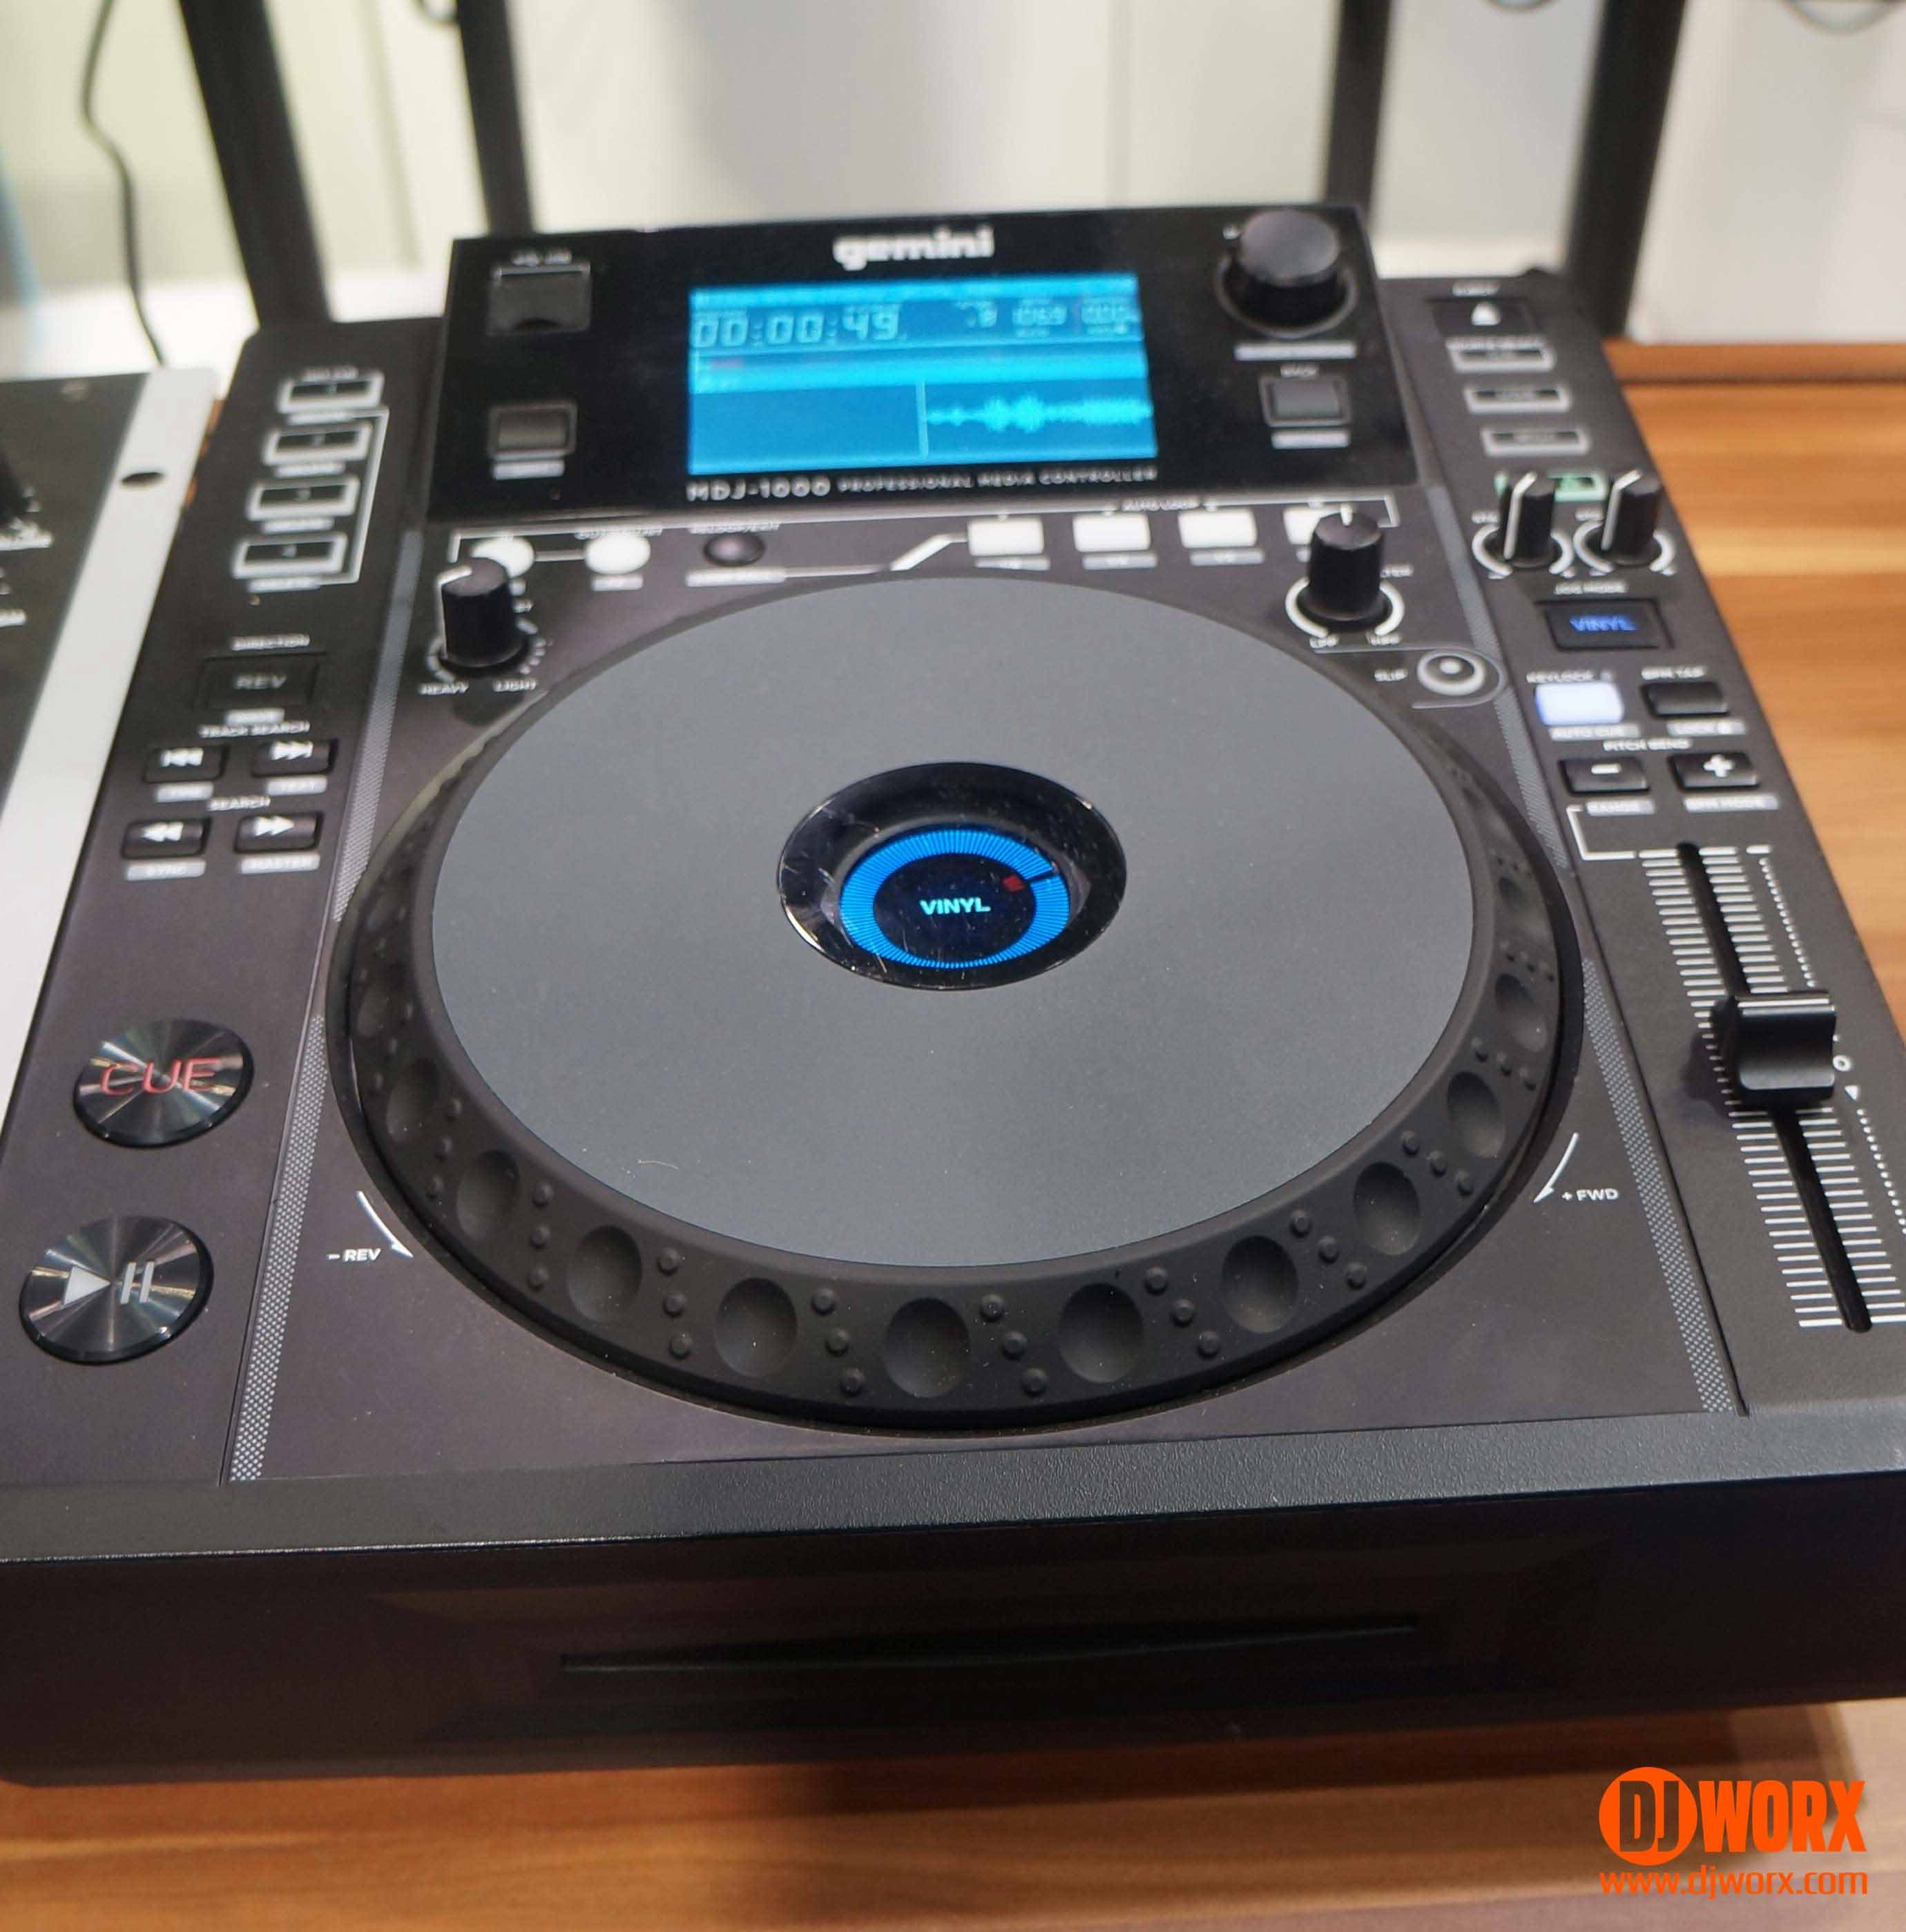 Gemini MDJ-1000 CDJ media player NAMM 2015 (3)